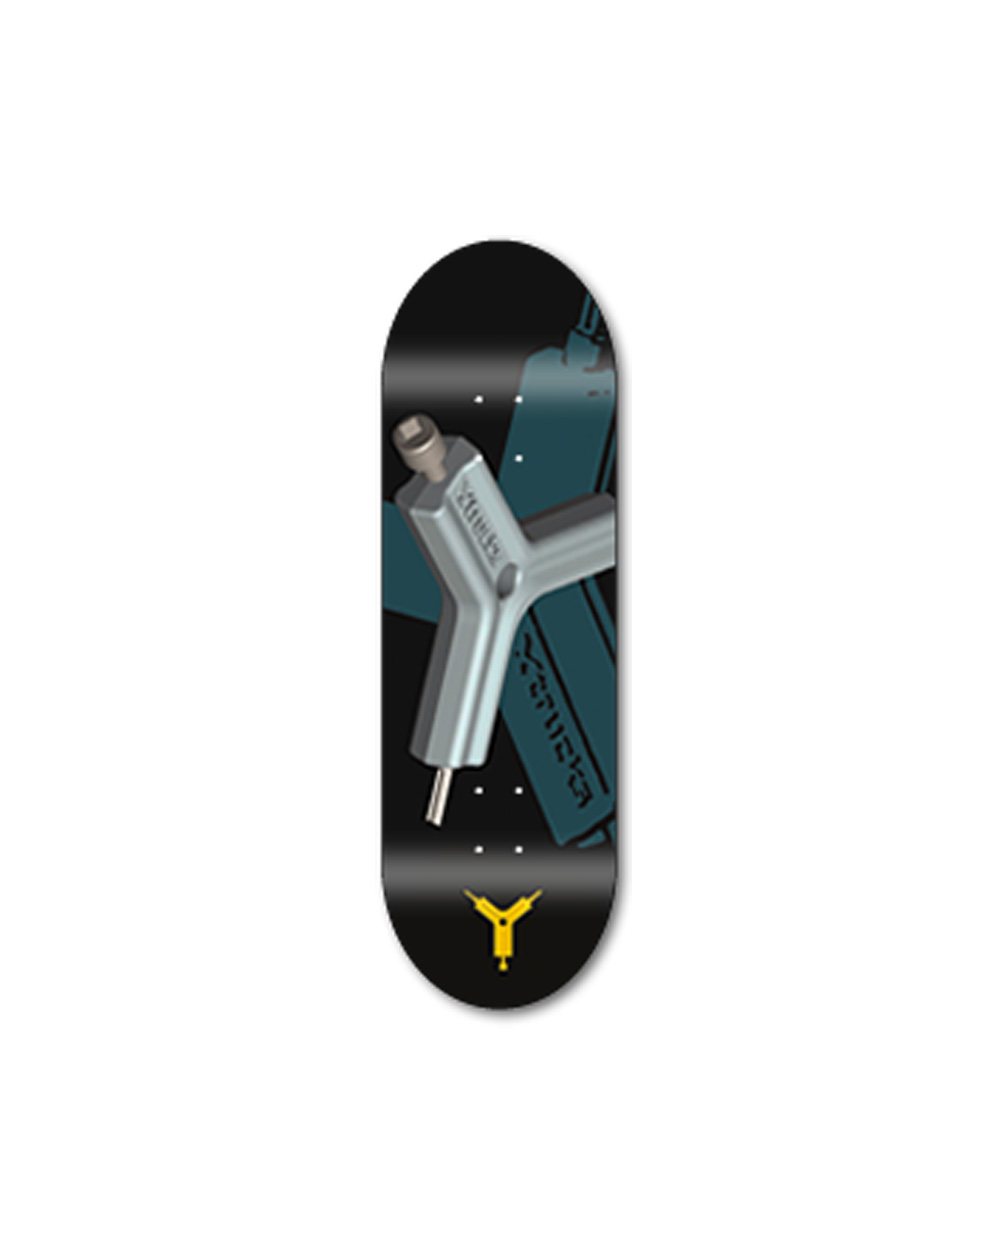 Yellowood Ytrucks III Z3 Fingerboard Deck